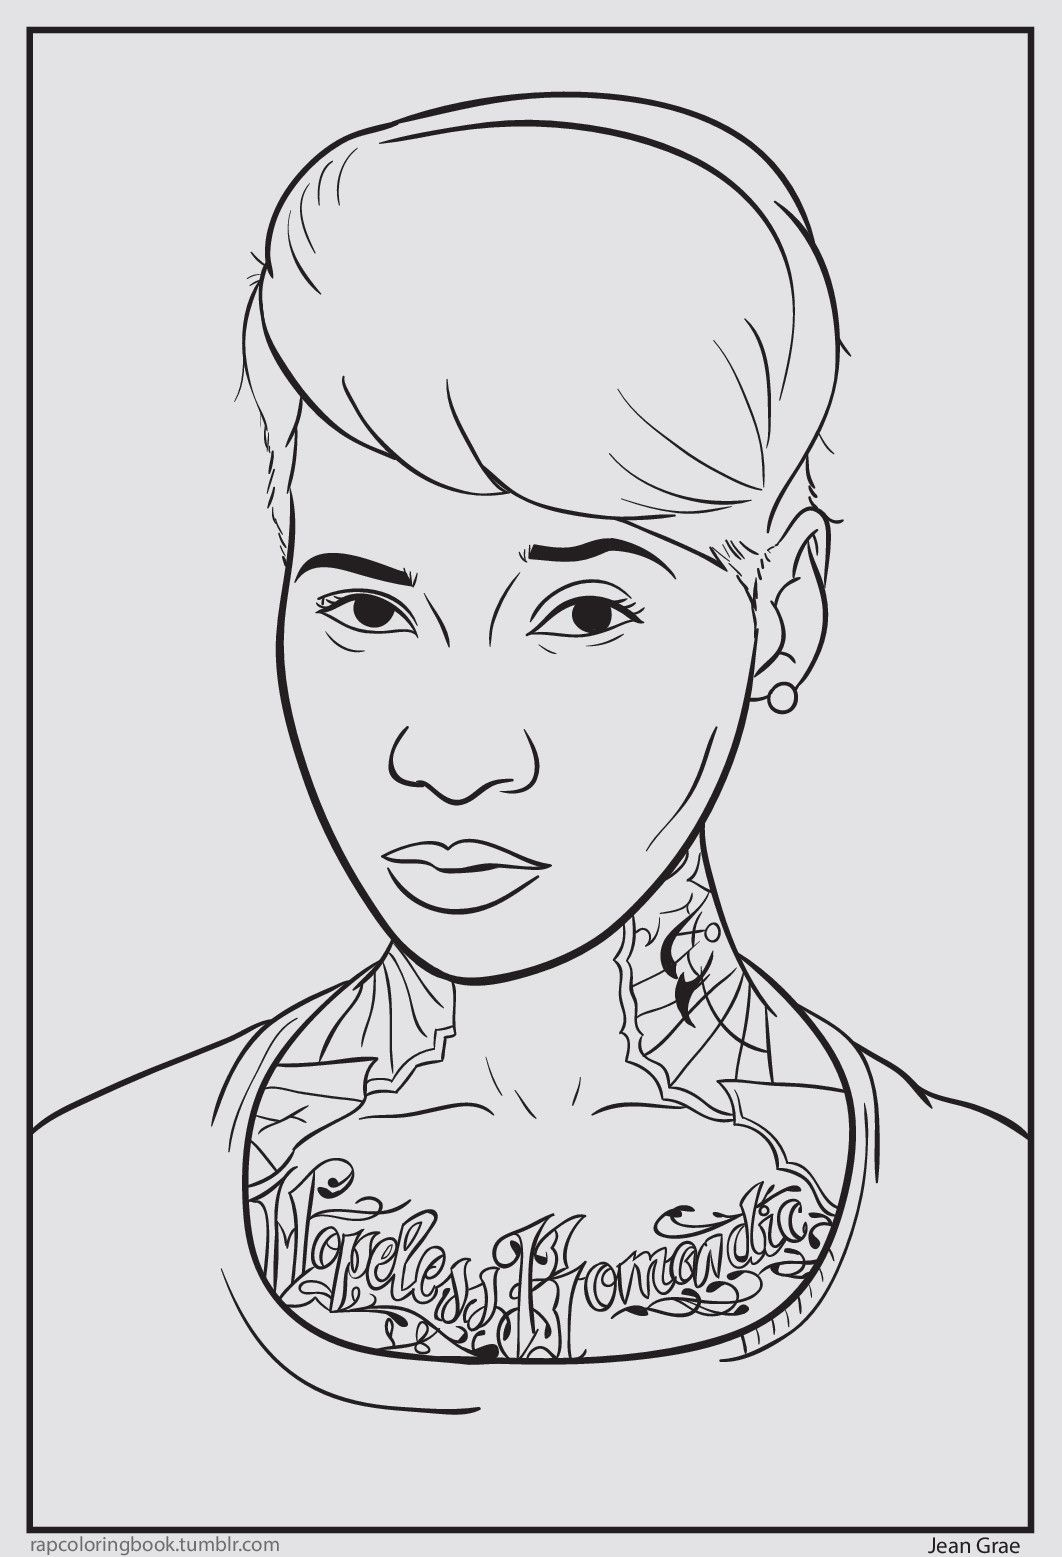 Click Here To Download The Jean Grae Coloring Page Print